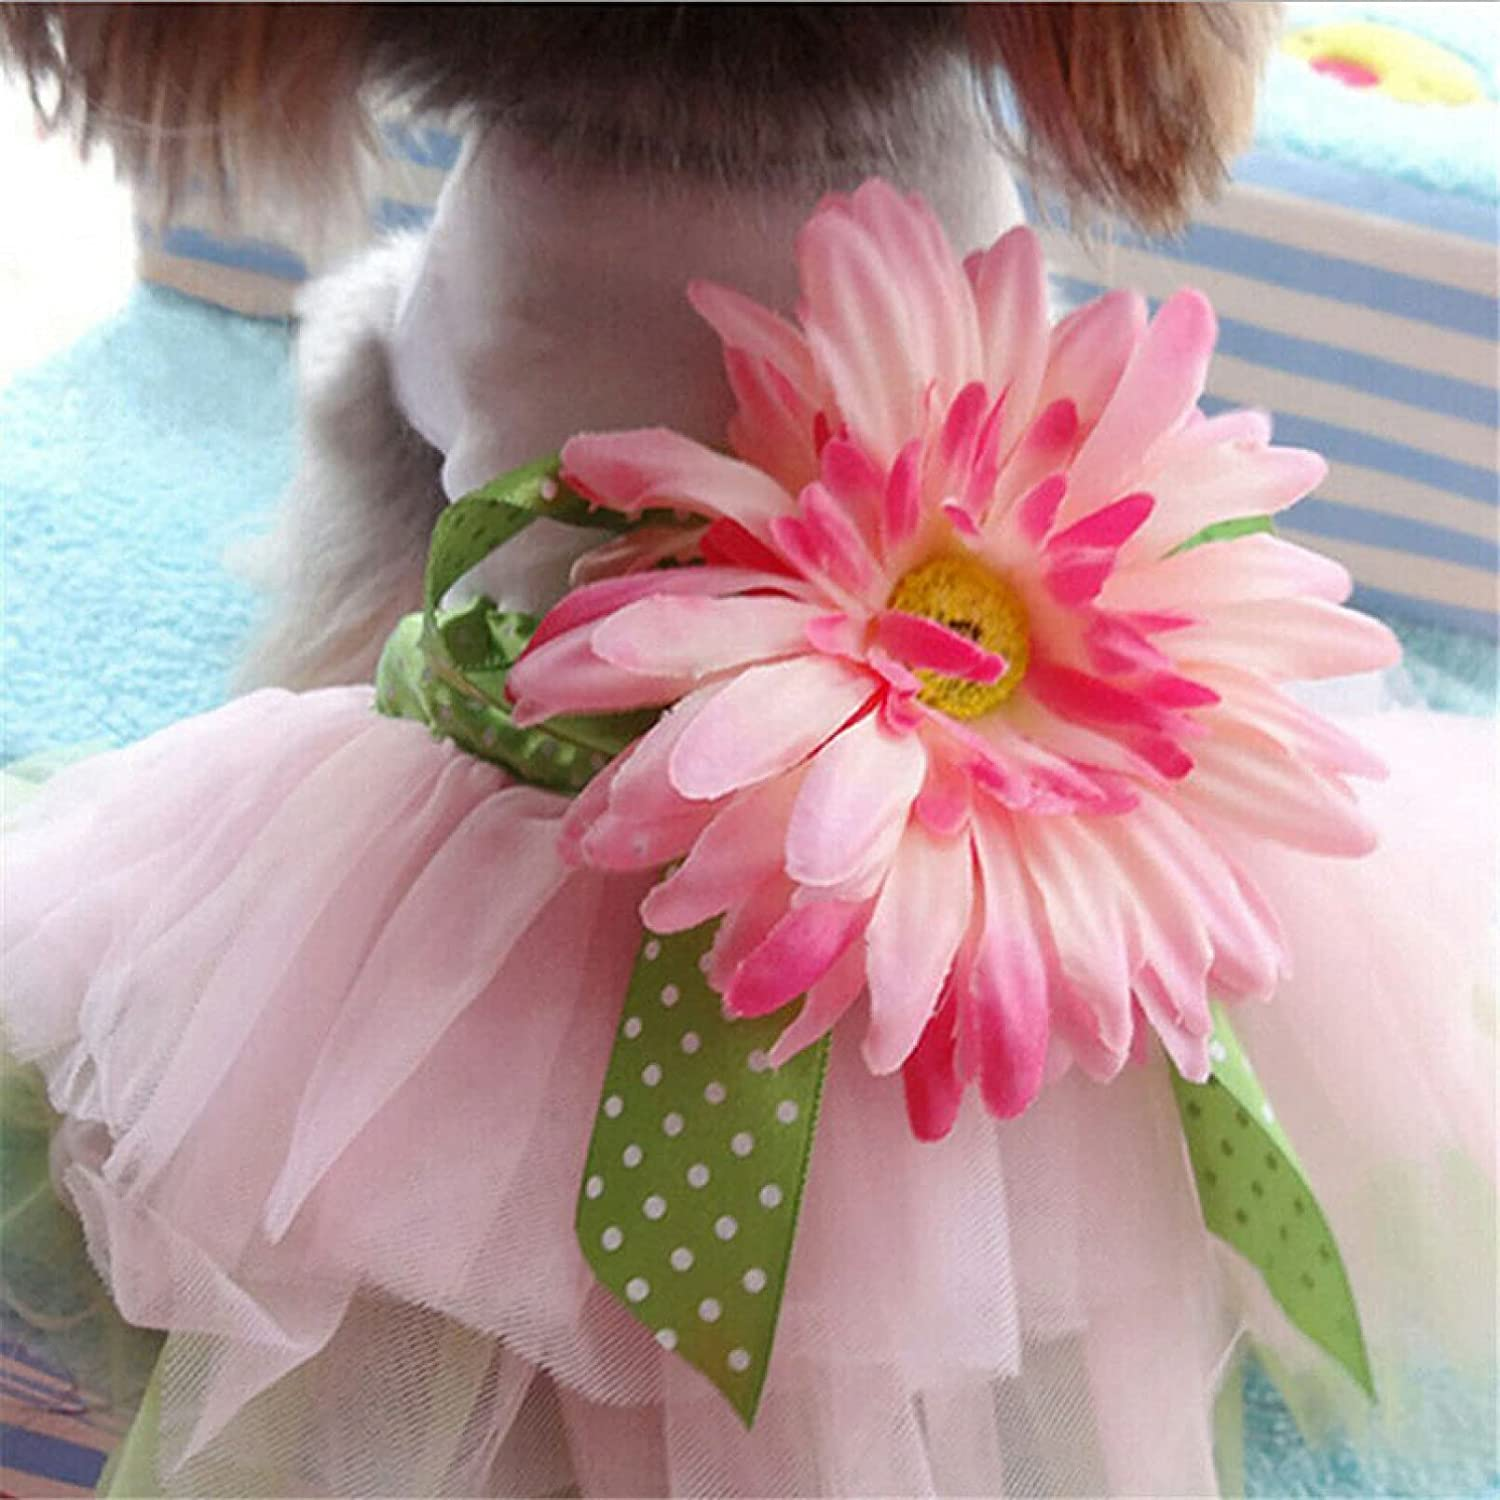 MDKAZ Clothes for Pets Cute Dog Puppy Pet Party Recommendation Popular brand in the world Skirts D